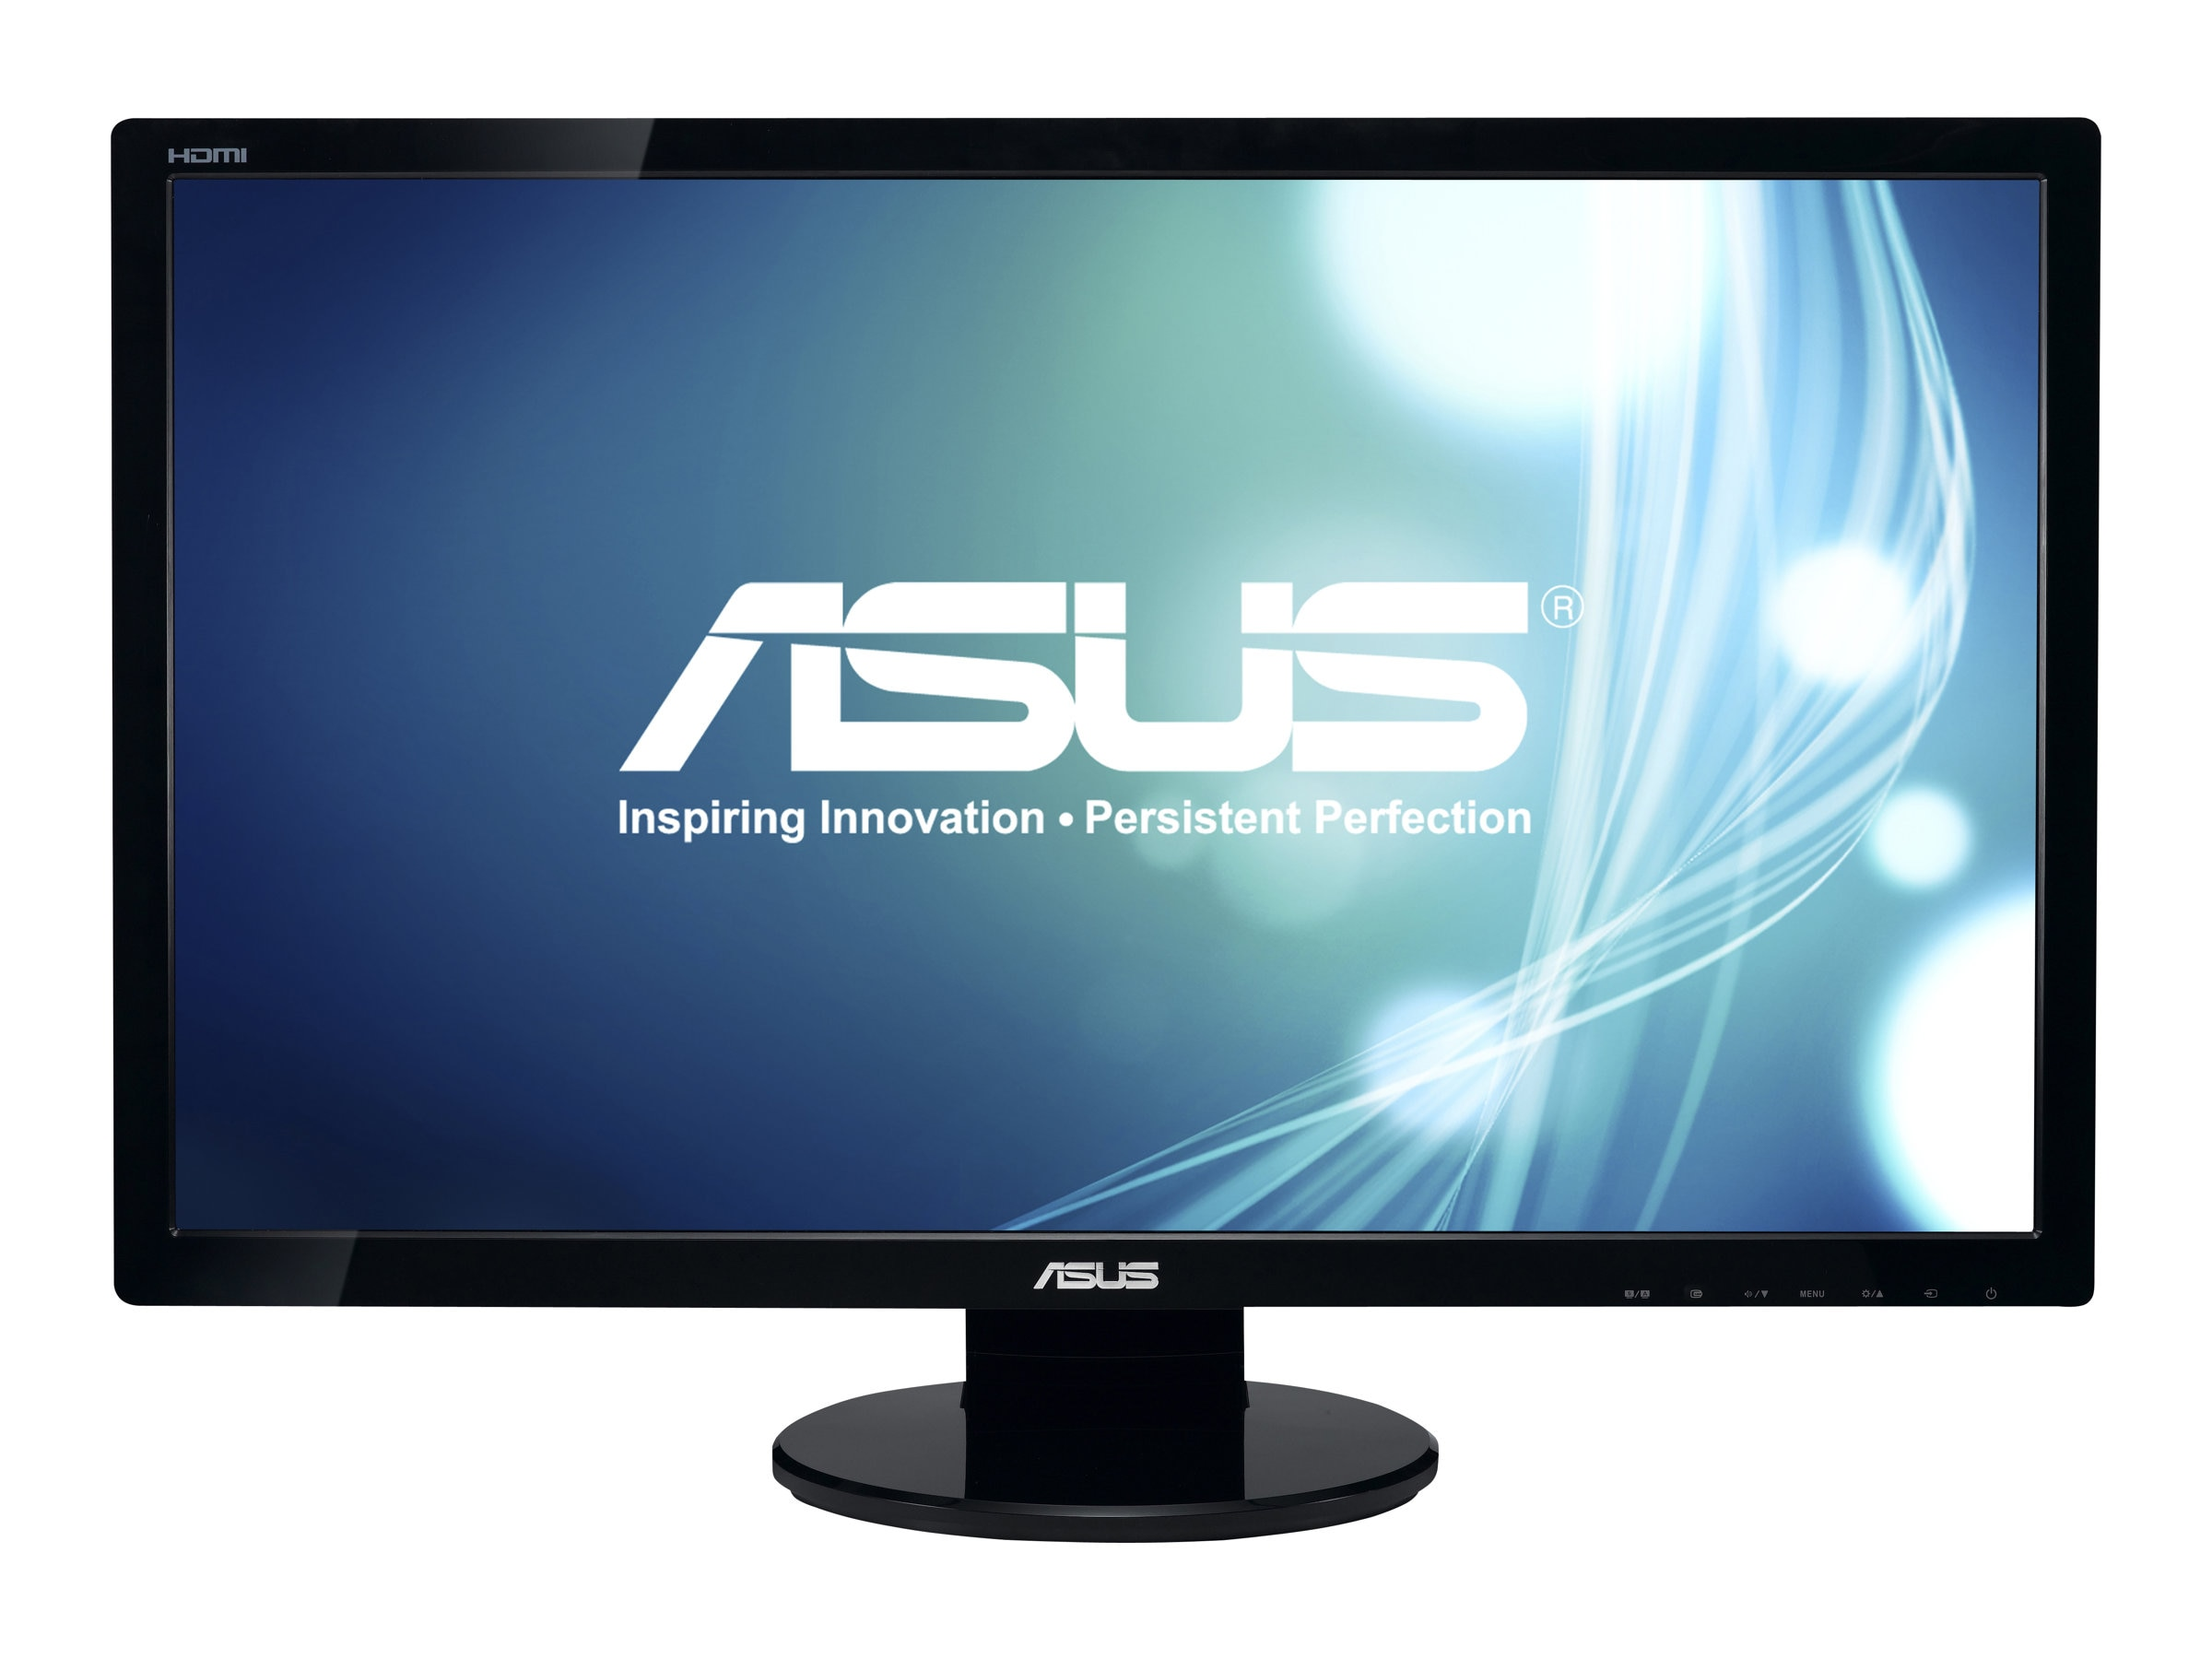 Asus 27 VE278H Full HD LED-LCD Monitor, Black, VE278H, 14763463, Monitors - LED-LCD